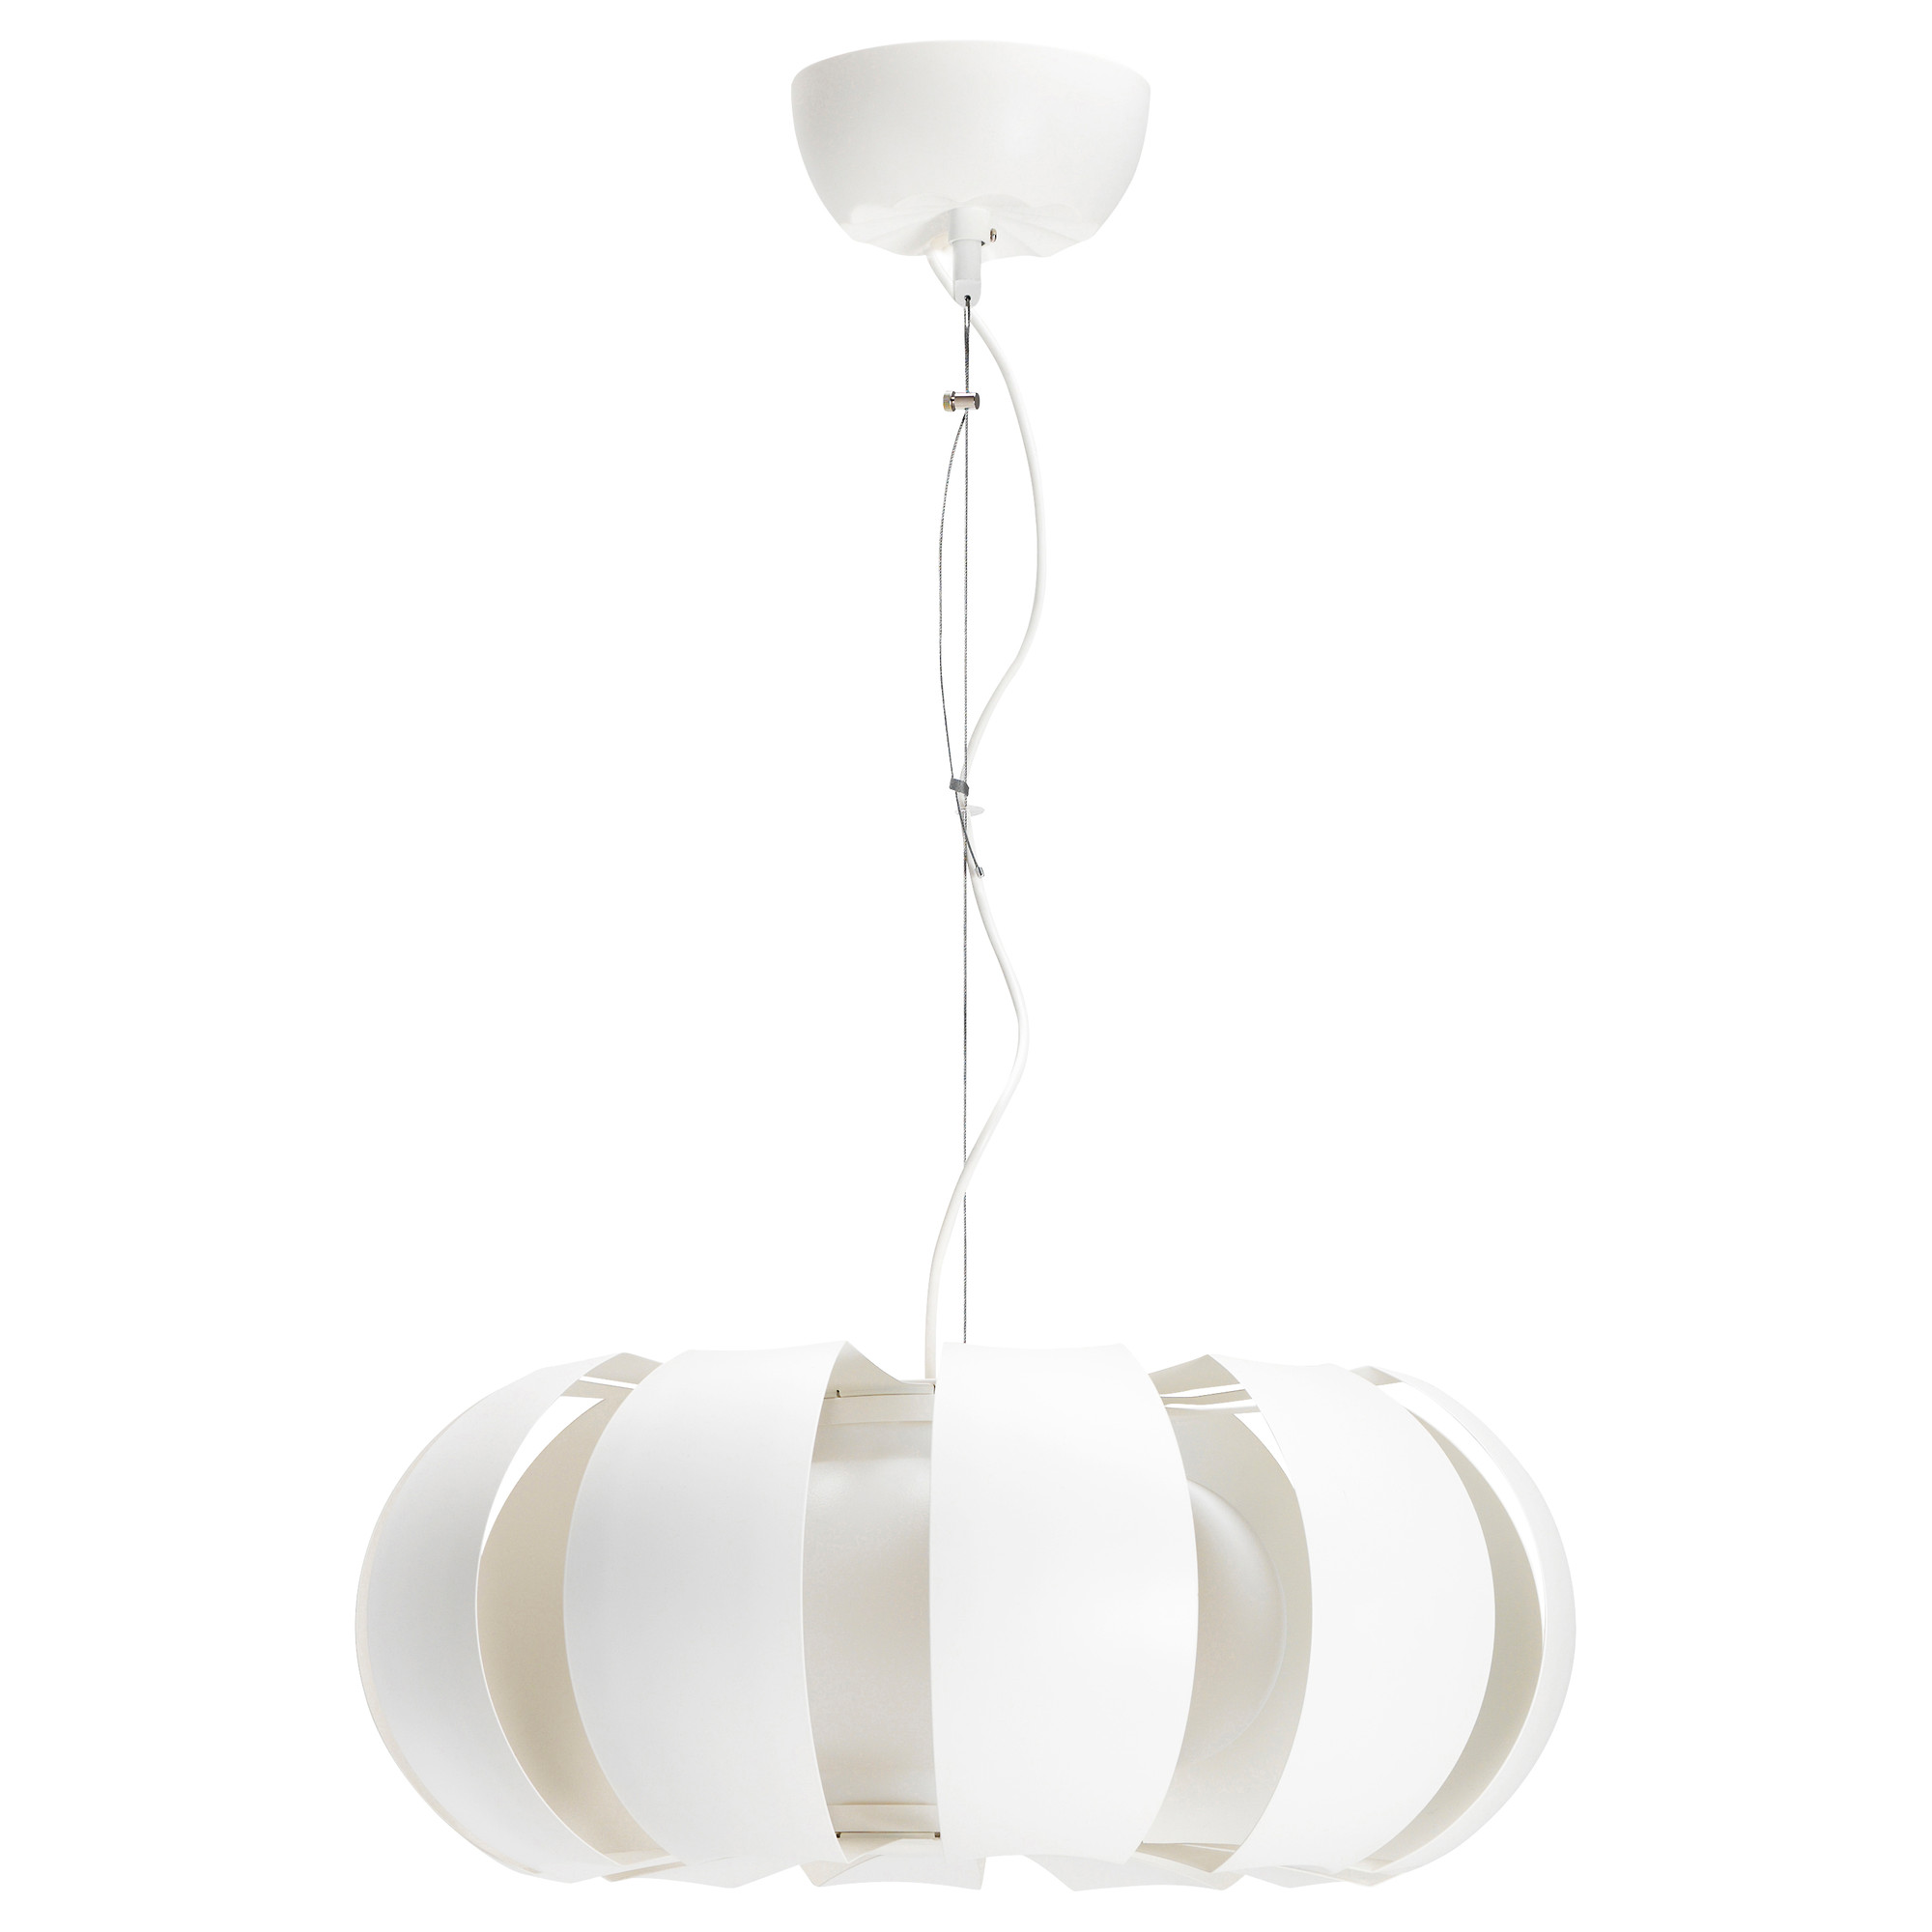 Ikea ceiling lights ceiling designs ikea led ceiling lights is one of the best energy efficient parisarafo Gallery